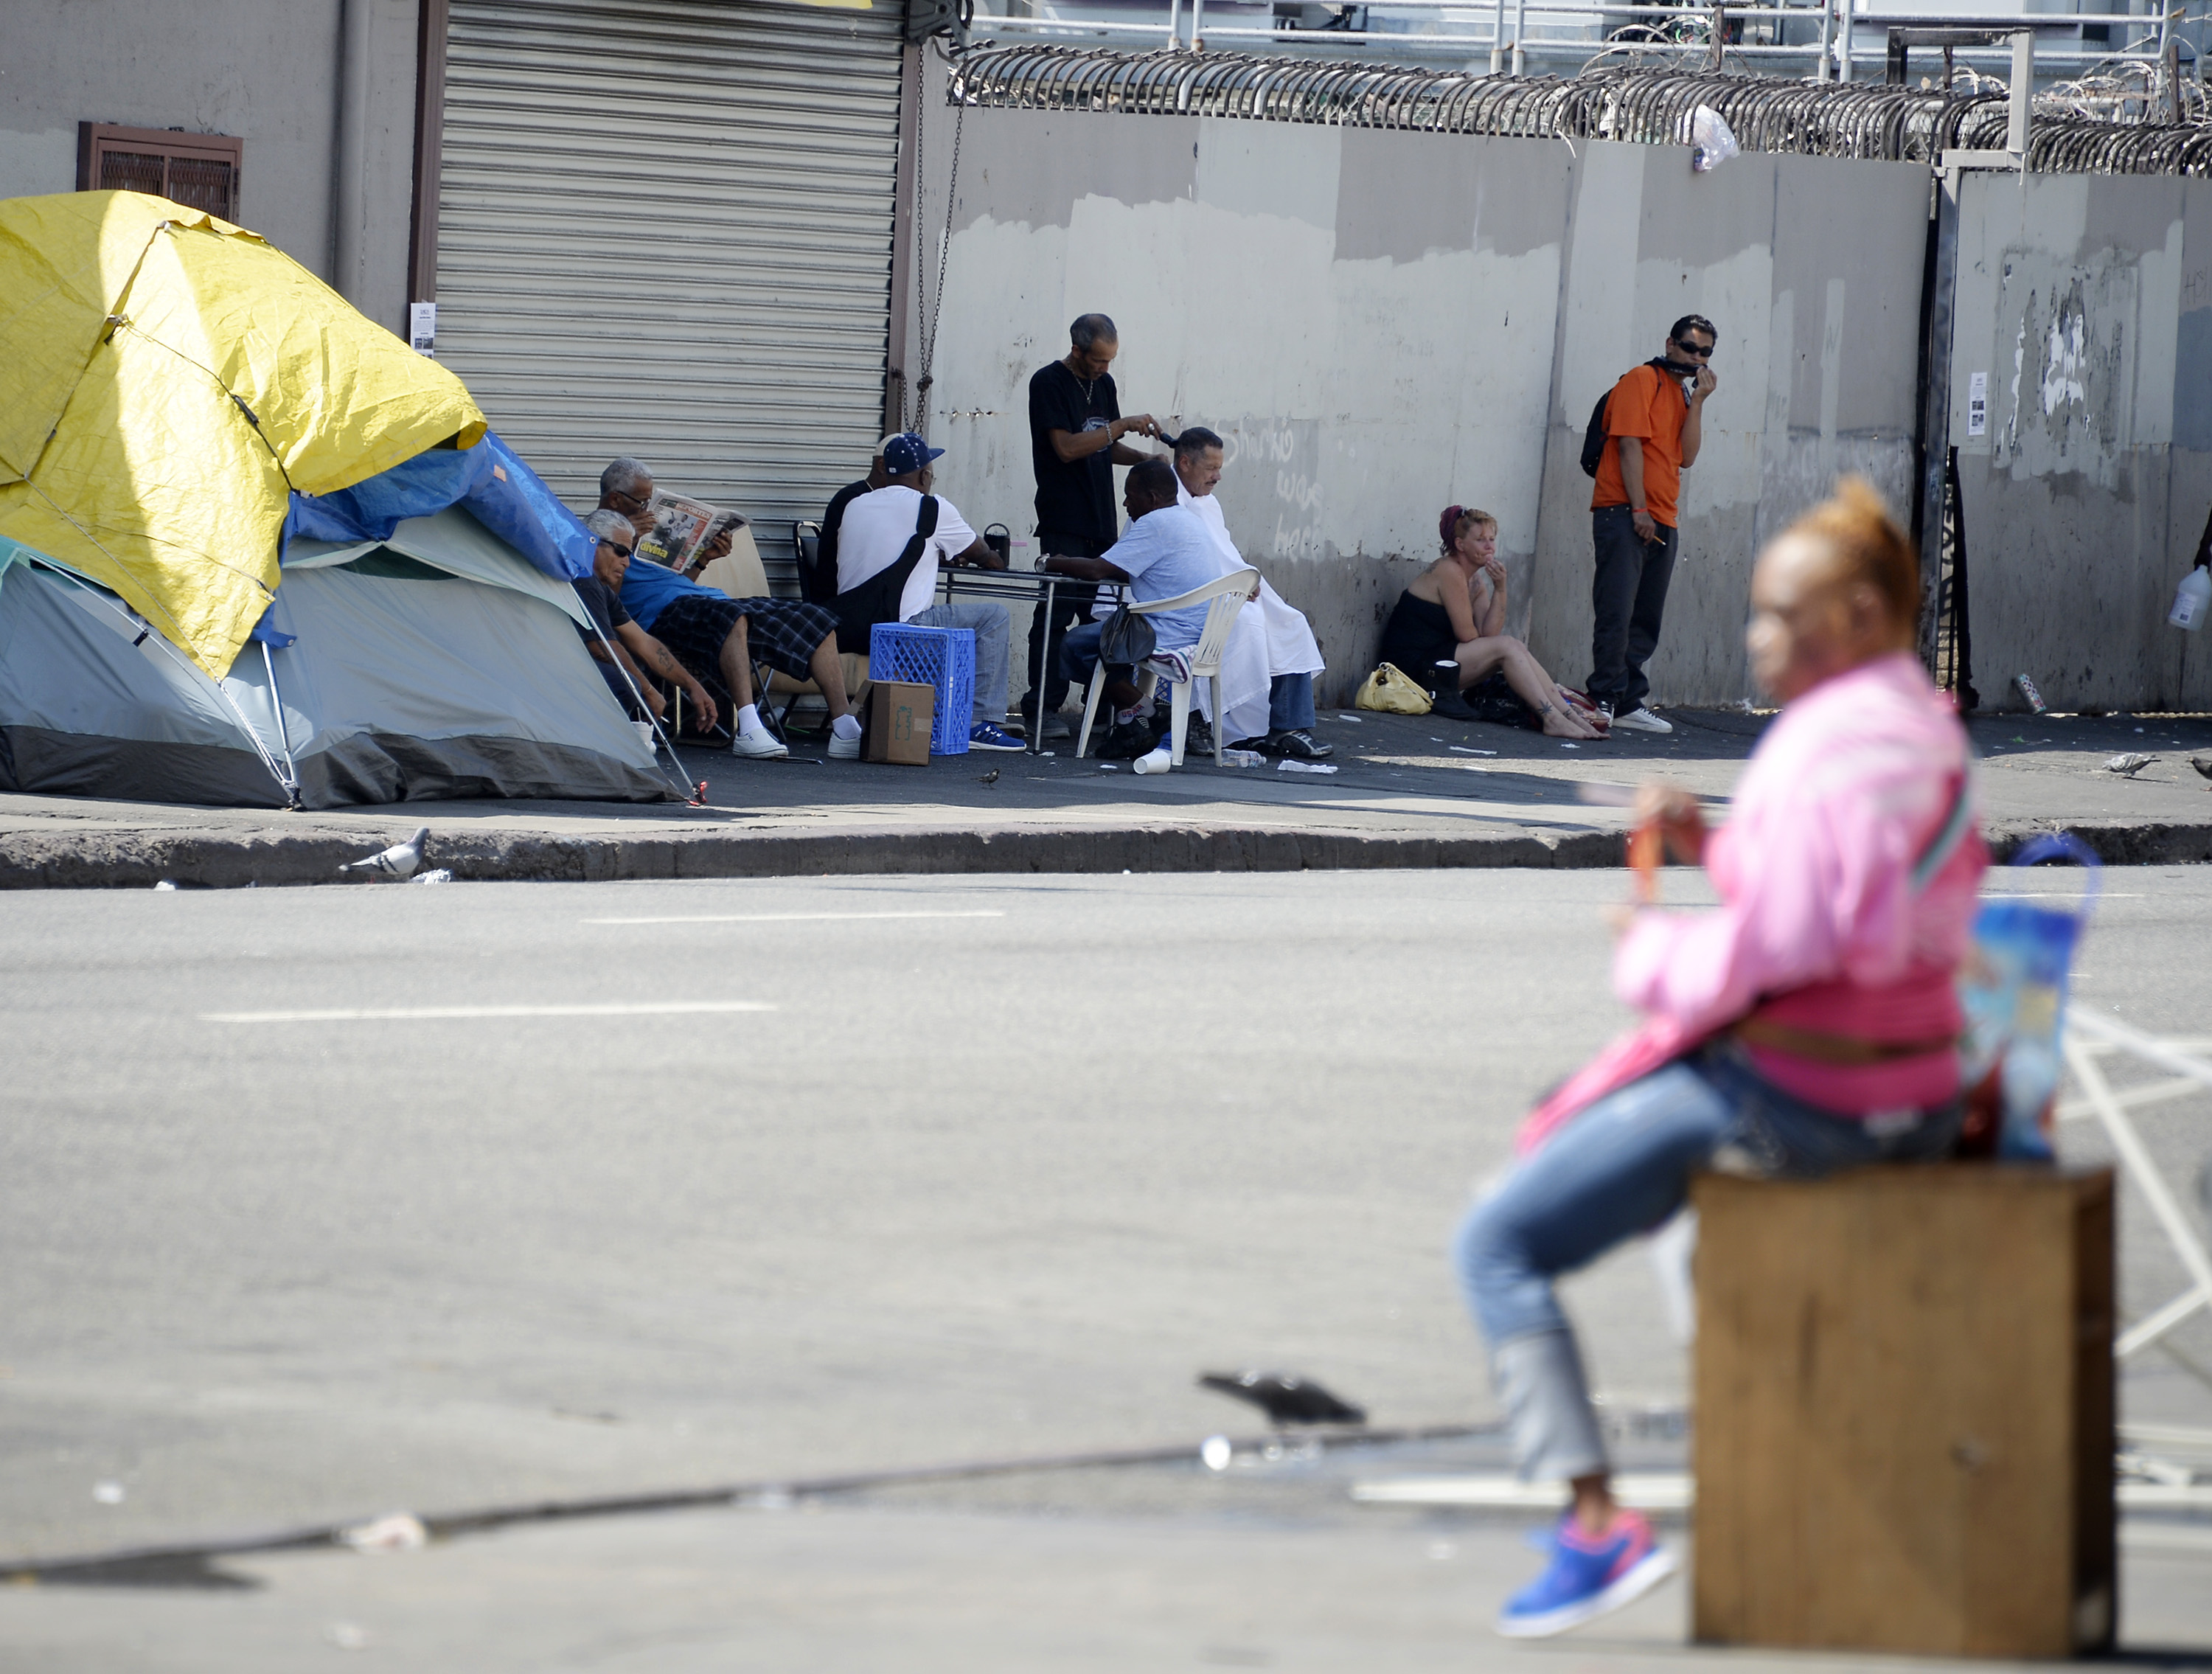 Los Angeles Mayor Declares State Of Emergency Over Homelessness Problem In City